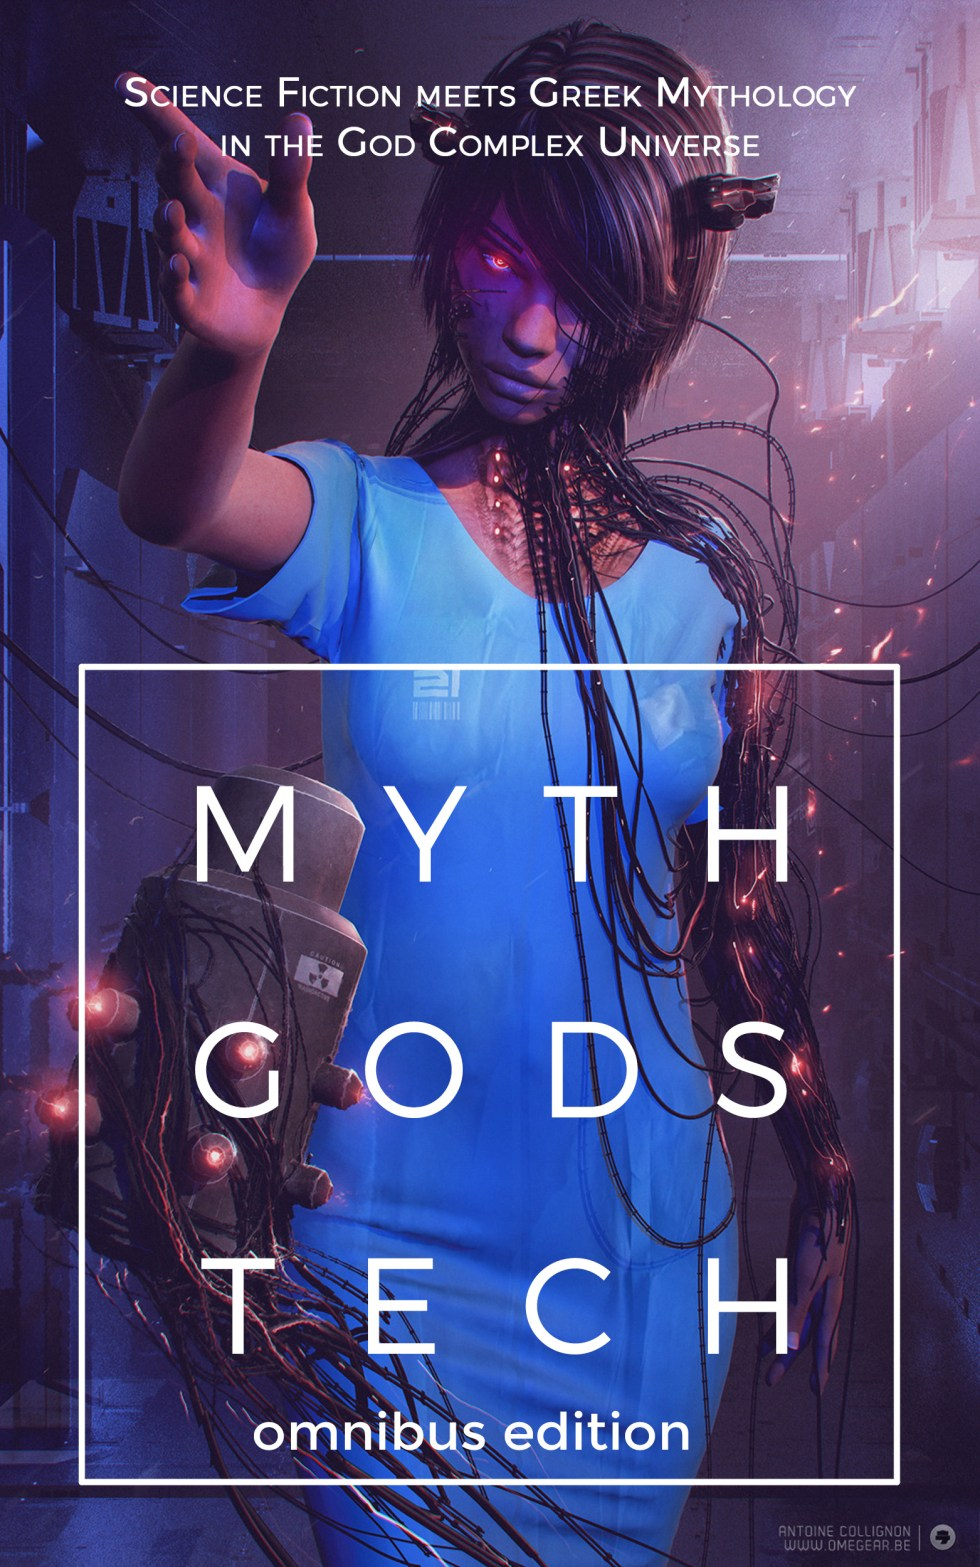 Myth Gods Tech is a constantly updated omnibus of all the books in the God Complex Universe.